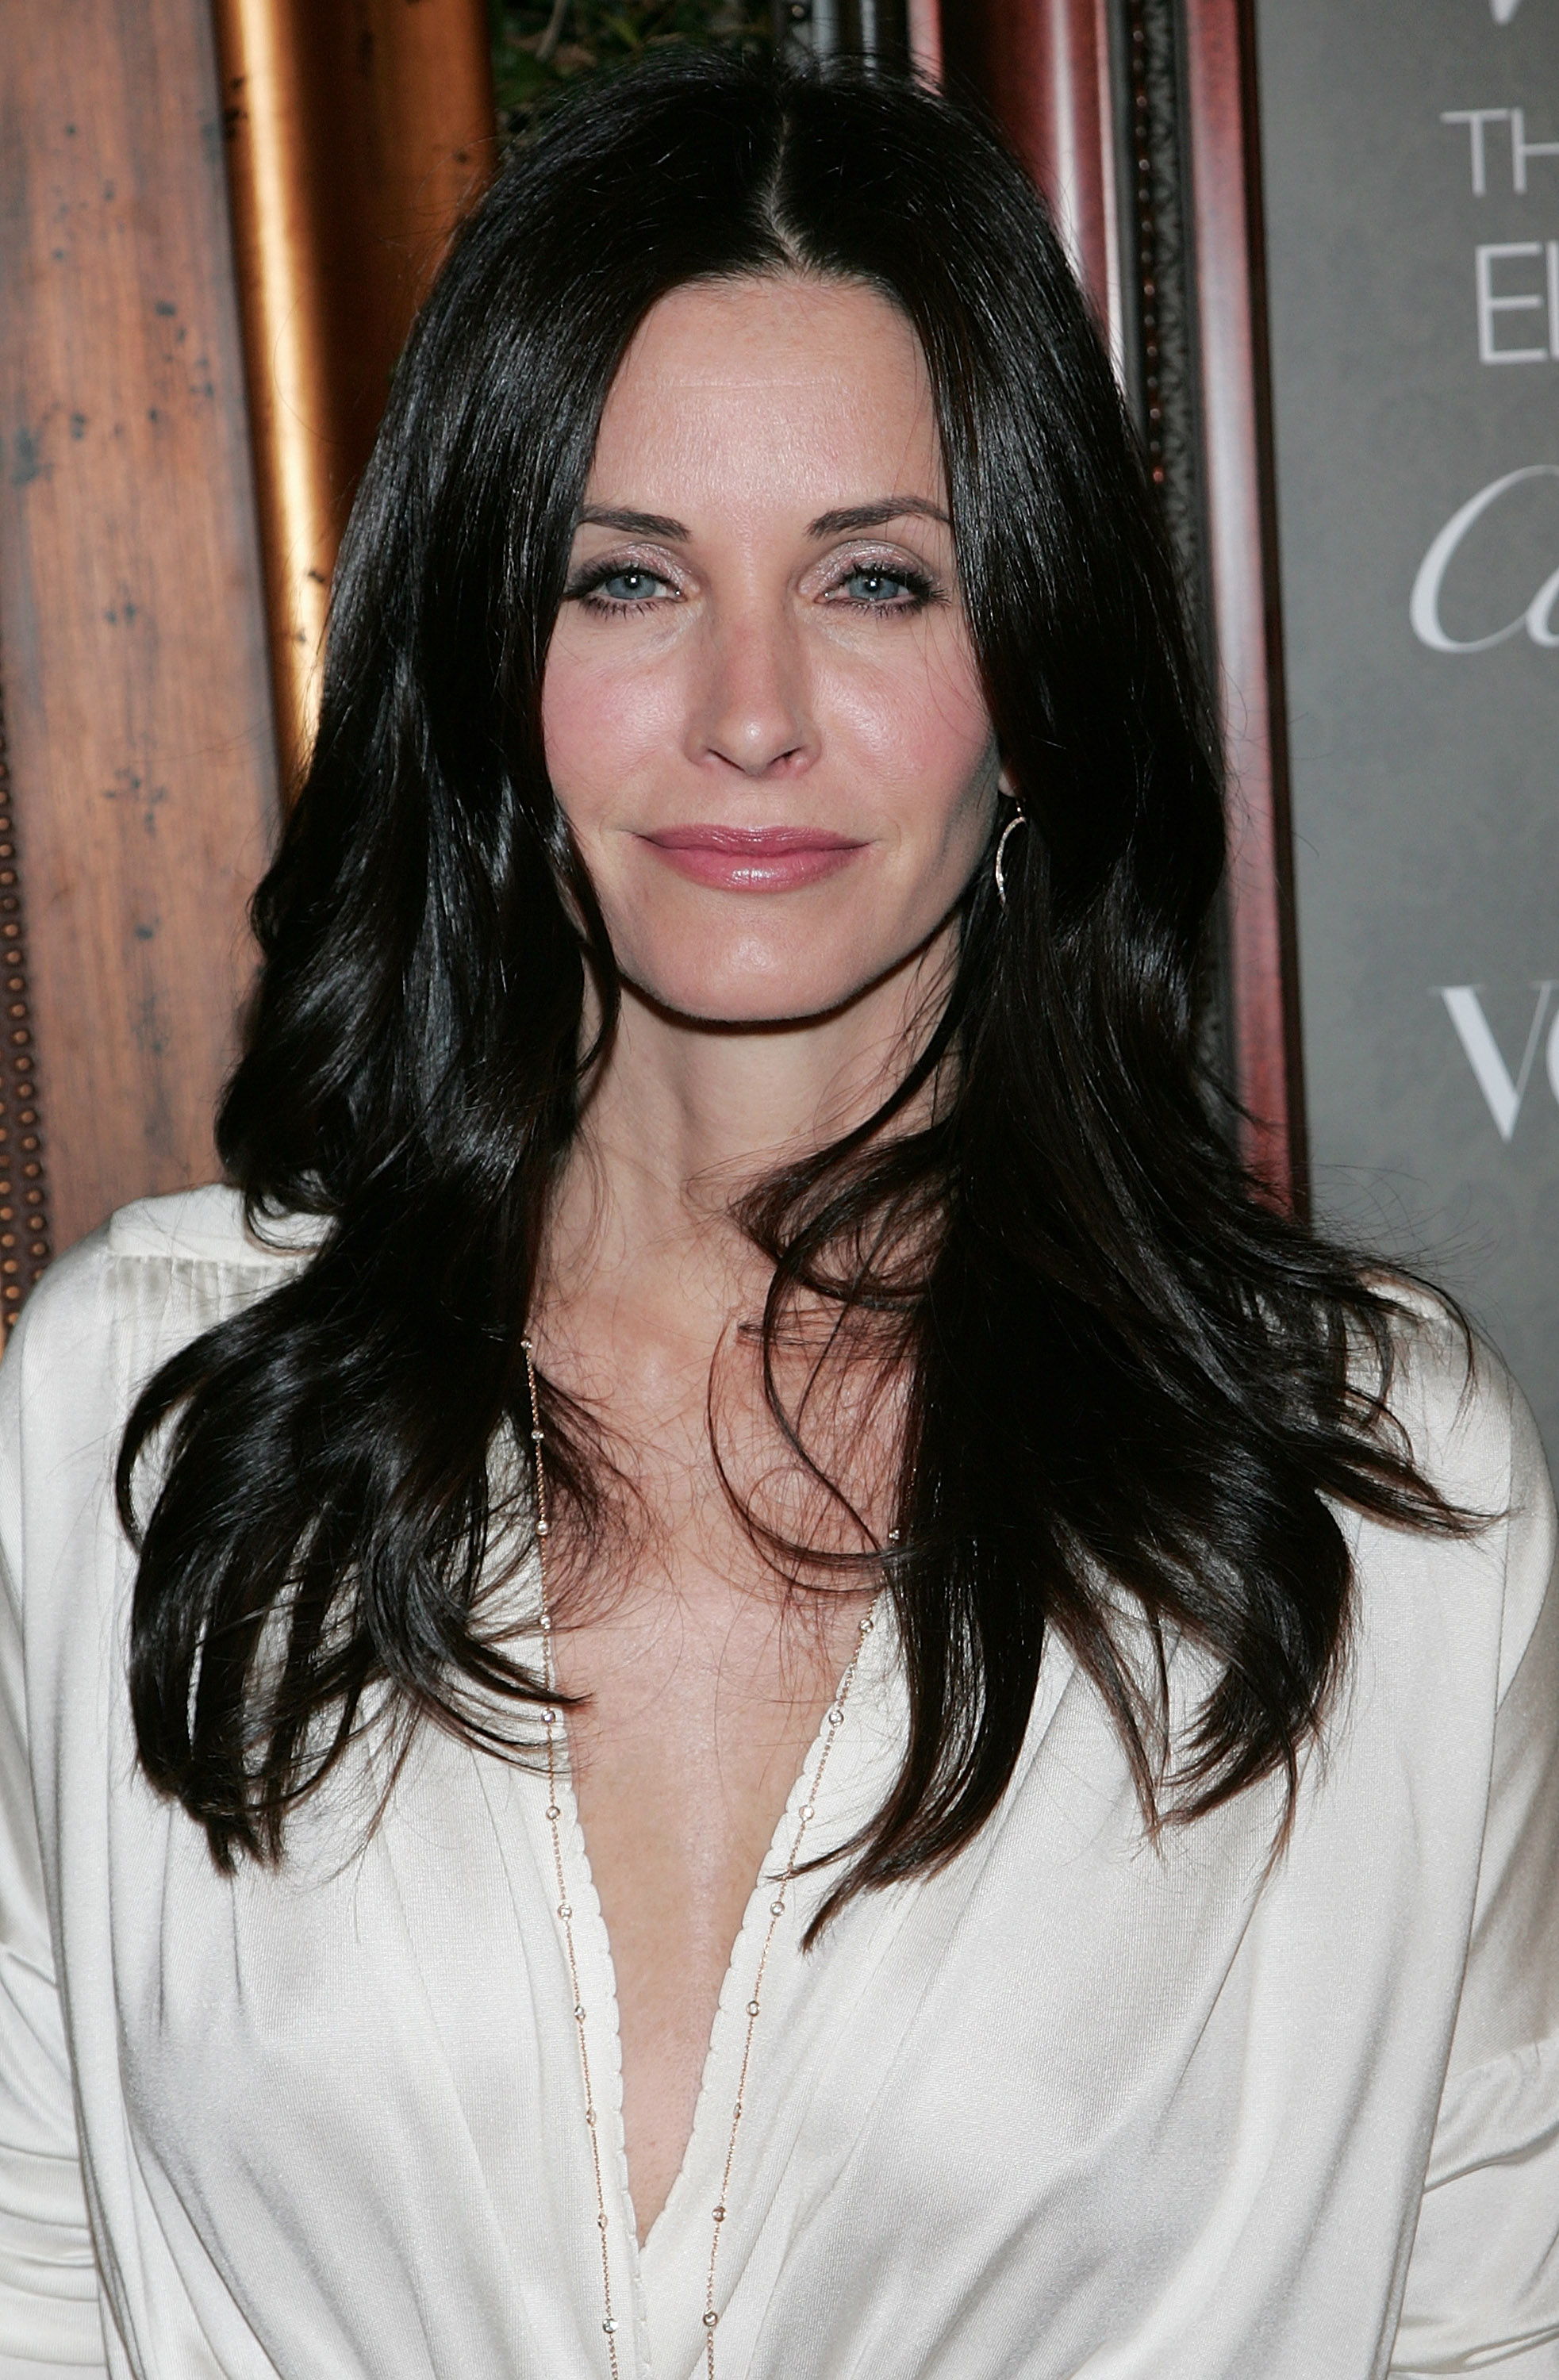 74717_Celebutopia-Courteney_Cox_arrives_at_the_The_Art_Of_Elysium11s_2nd_Annual_Black_Tie_Gala-01_122_258lo.jpg